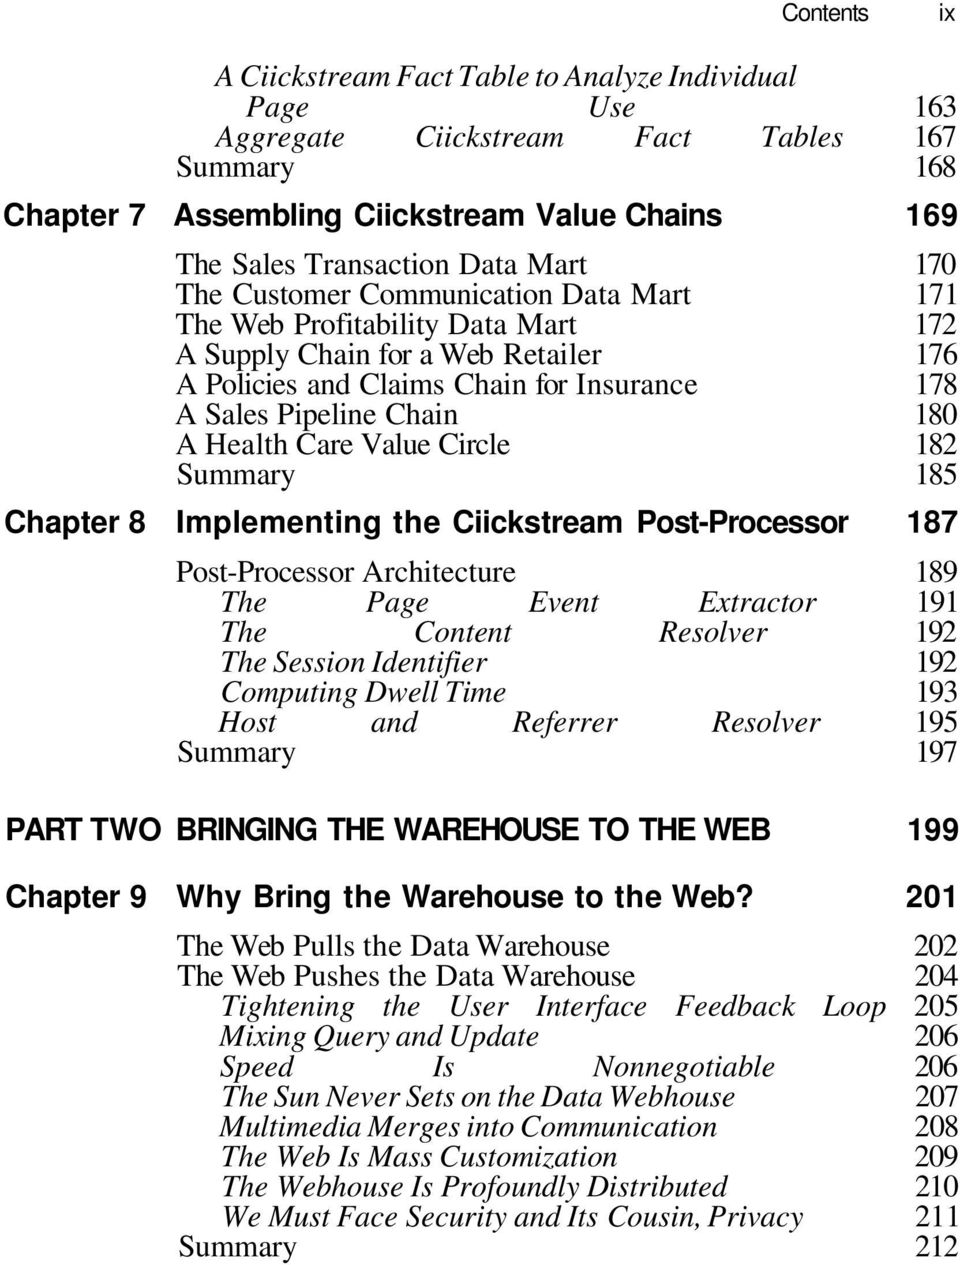 Health Care Value Circle 182 Summary 185 Chapter 8 Implementing the Ciickstream Post-Processor 187 Post-Processor Architecture 189 The Page Event Extractor 191 The Content Resolver 192 The Session